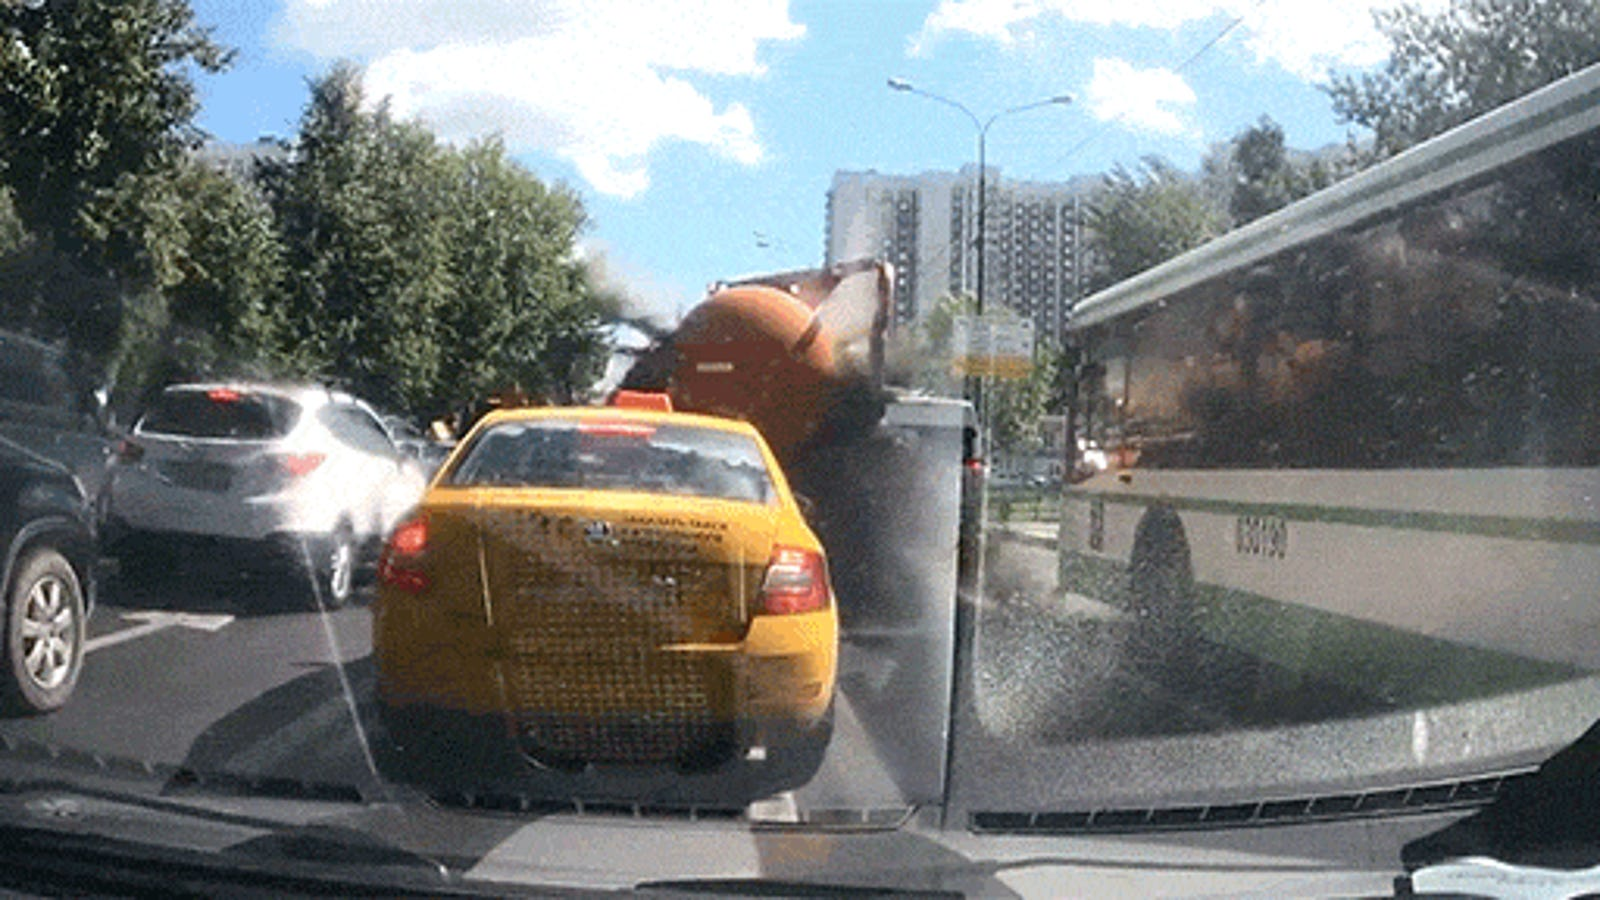 Watch a Sewage Truck Explode Even Though You Probably Don't Want To